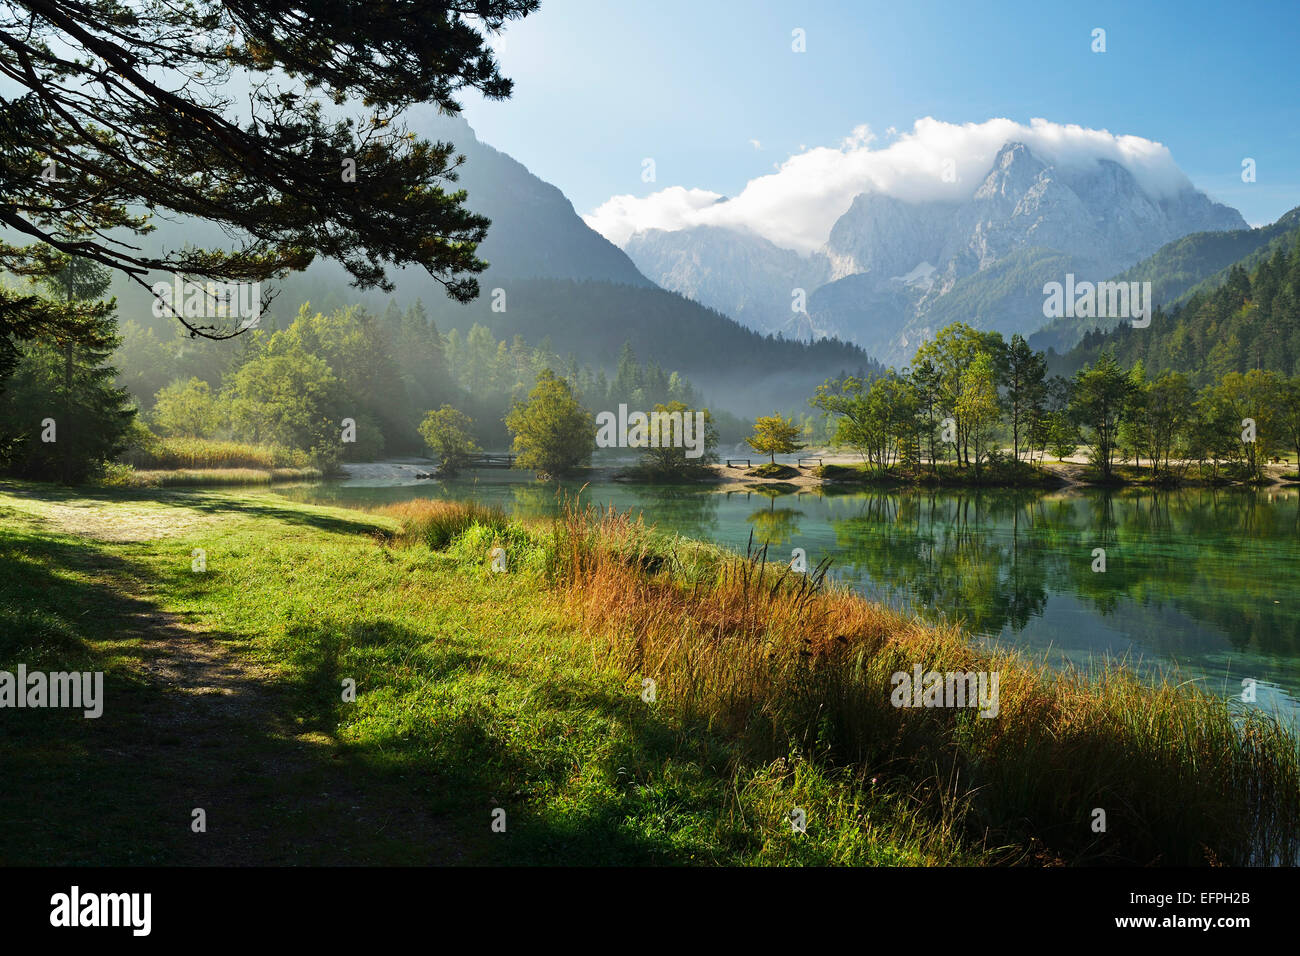 Lake Jasna and Julian Alps, Kranjska Gora, Slovenia, Europe - Stock Image